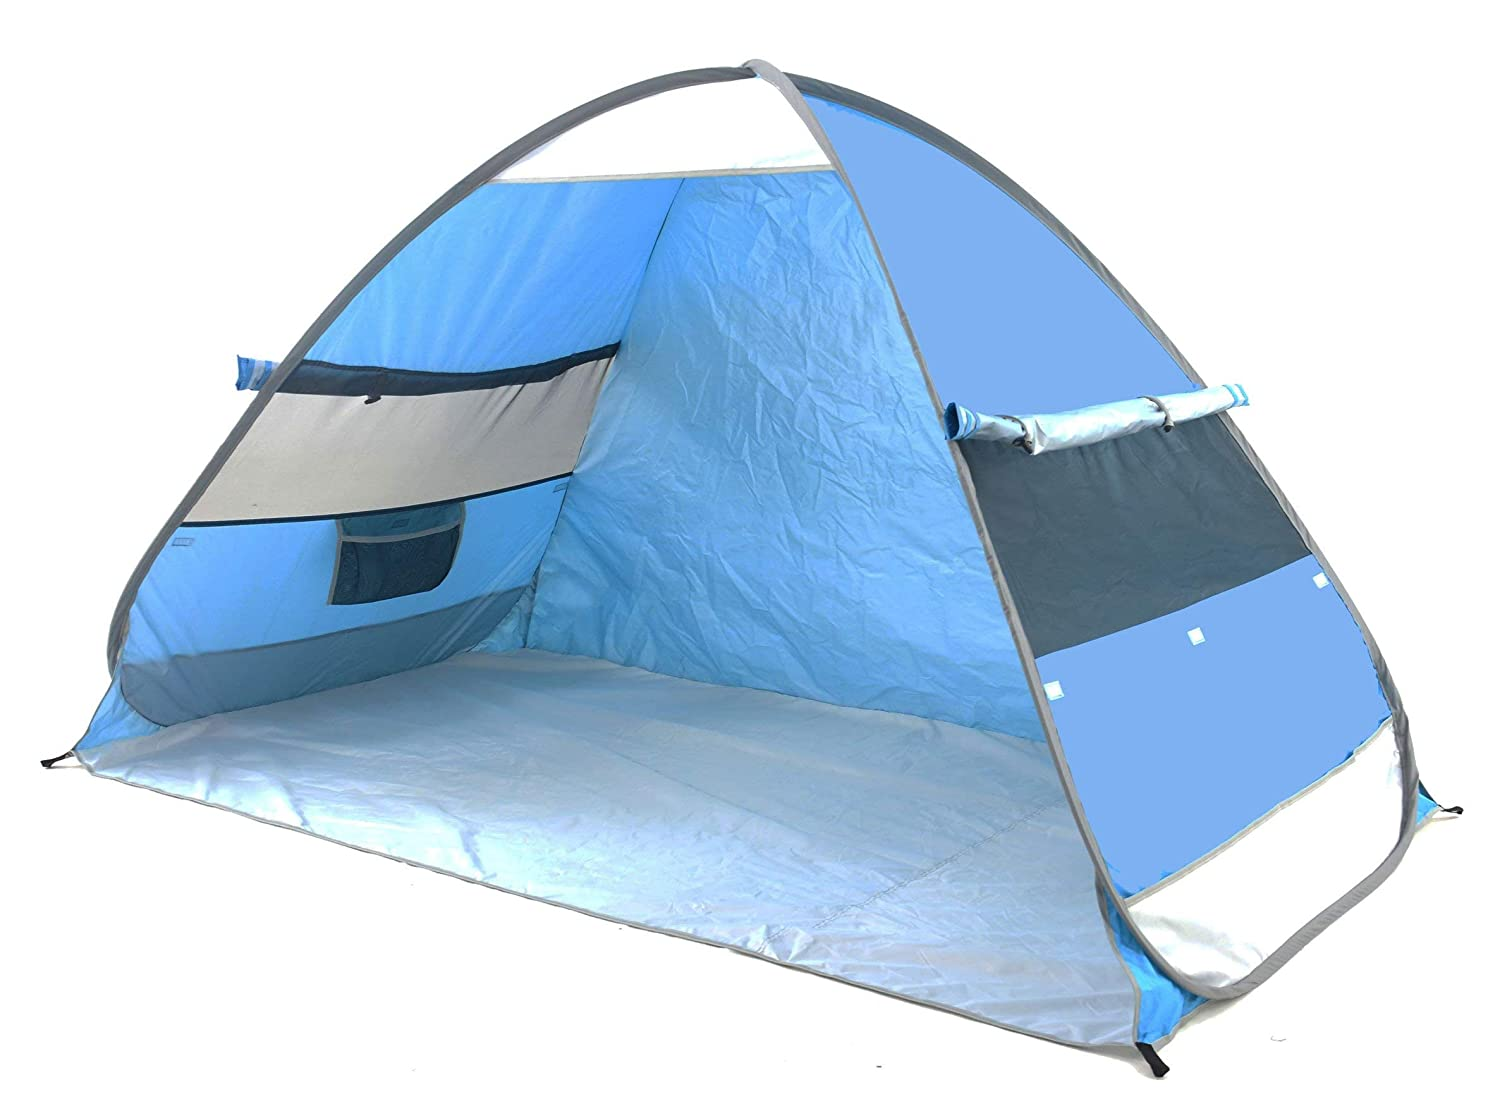 SolarWave Outdoor Easy-up Rays Pop-up is Beach Sun Tent. Pure ENJOYMENT: Reduces Relax, Recharge, Regroup! Reduces UVA and UVB Rays by 99.8%, Your QUALITY Shade | Shelter is GREAT for the Park or Soccer Game too. [並行輸入品] B07R4TFY3V, 御朱印帳専門店HollyHock:592b5627 --- number-directory.top